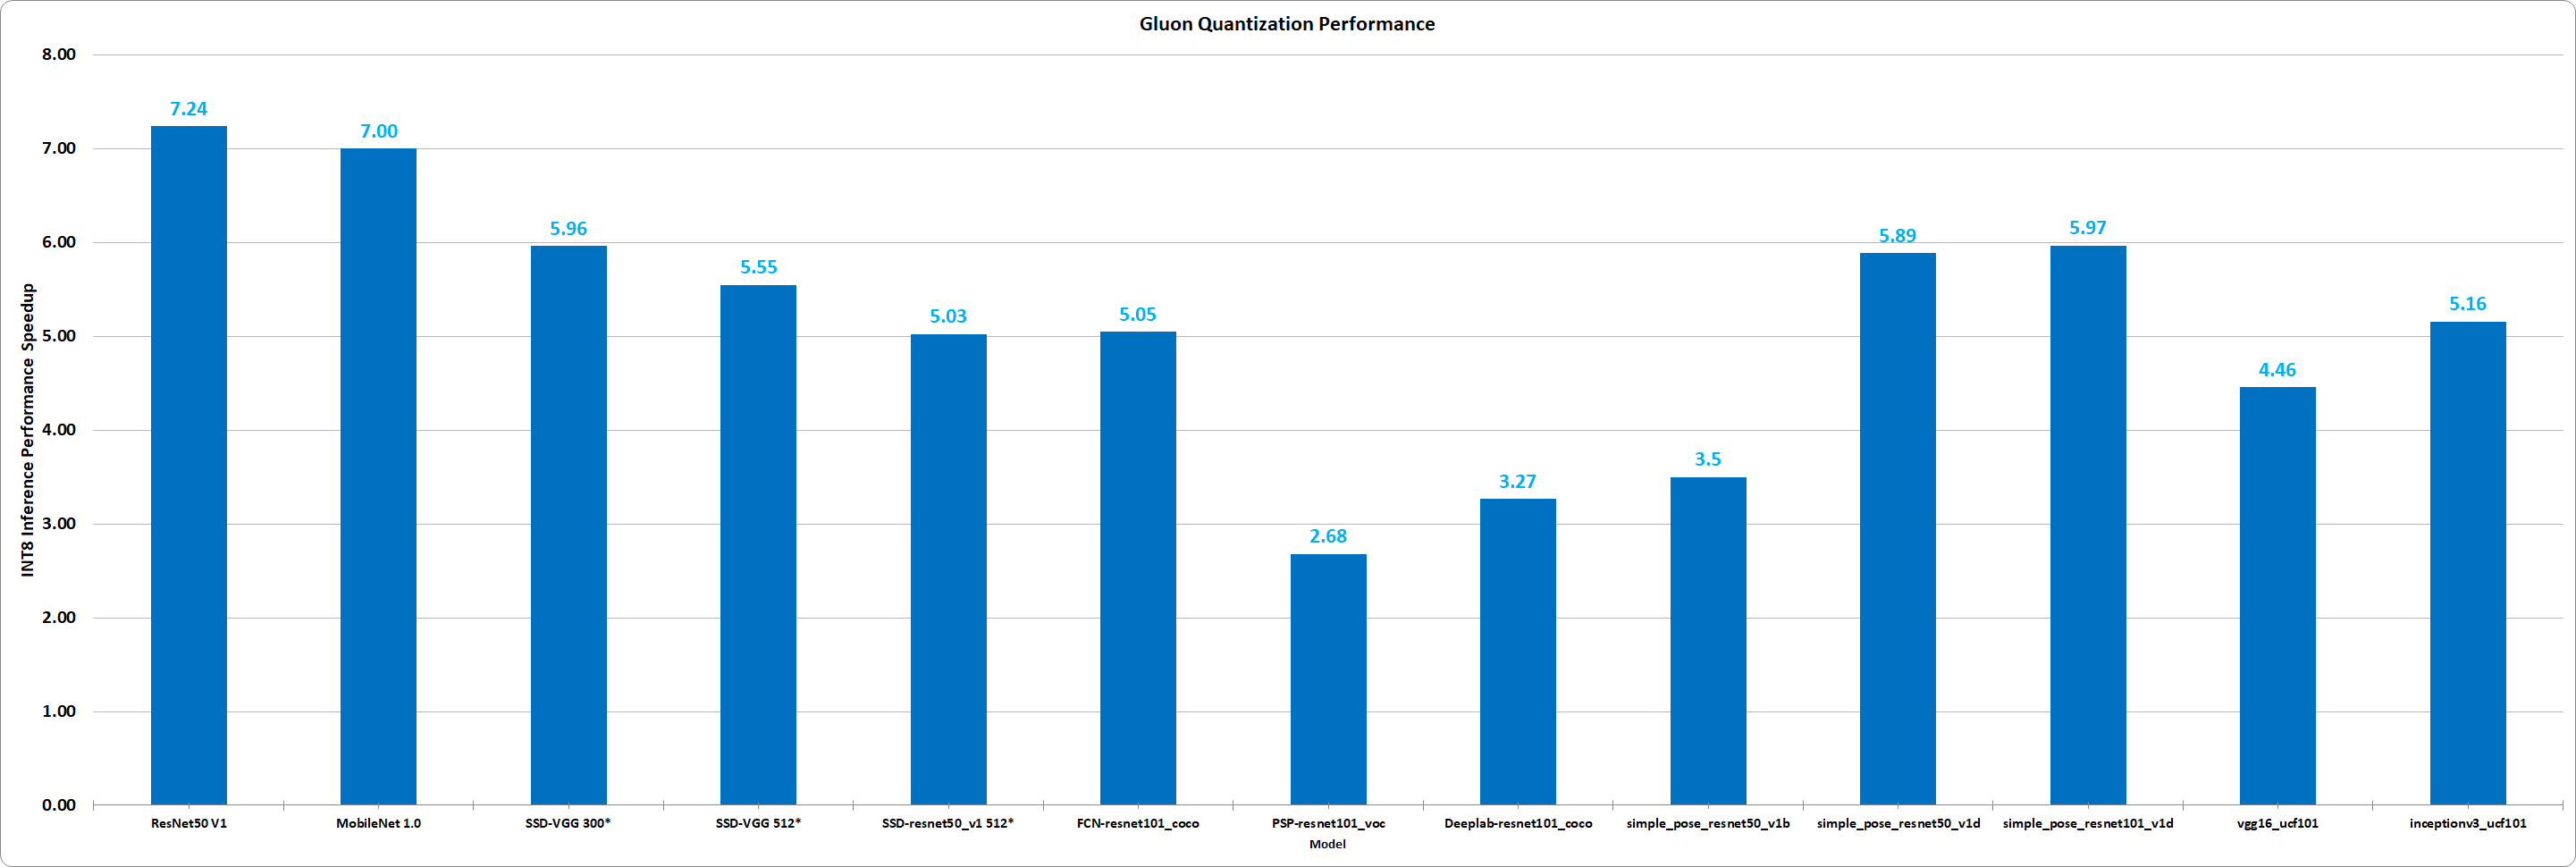 Gluon Quantization Performance